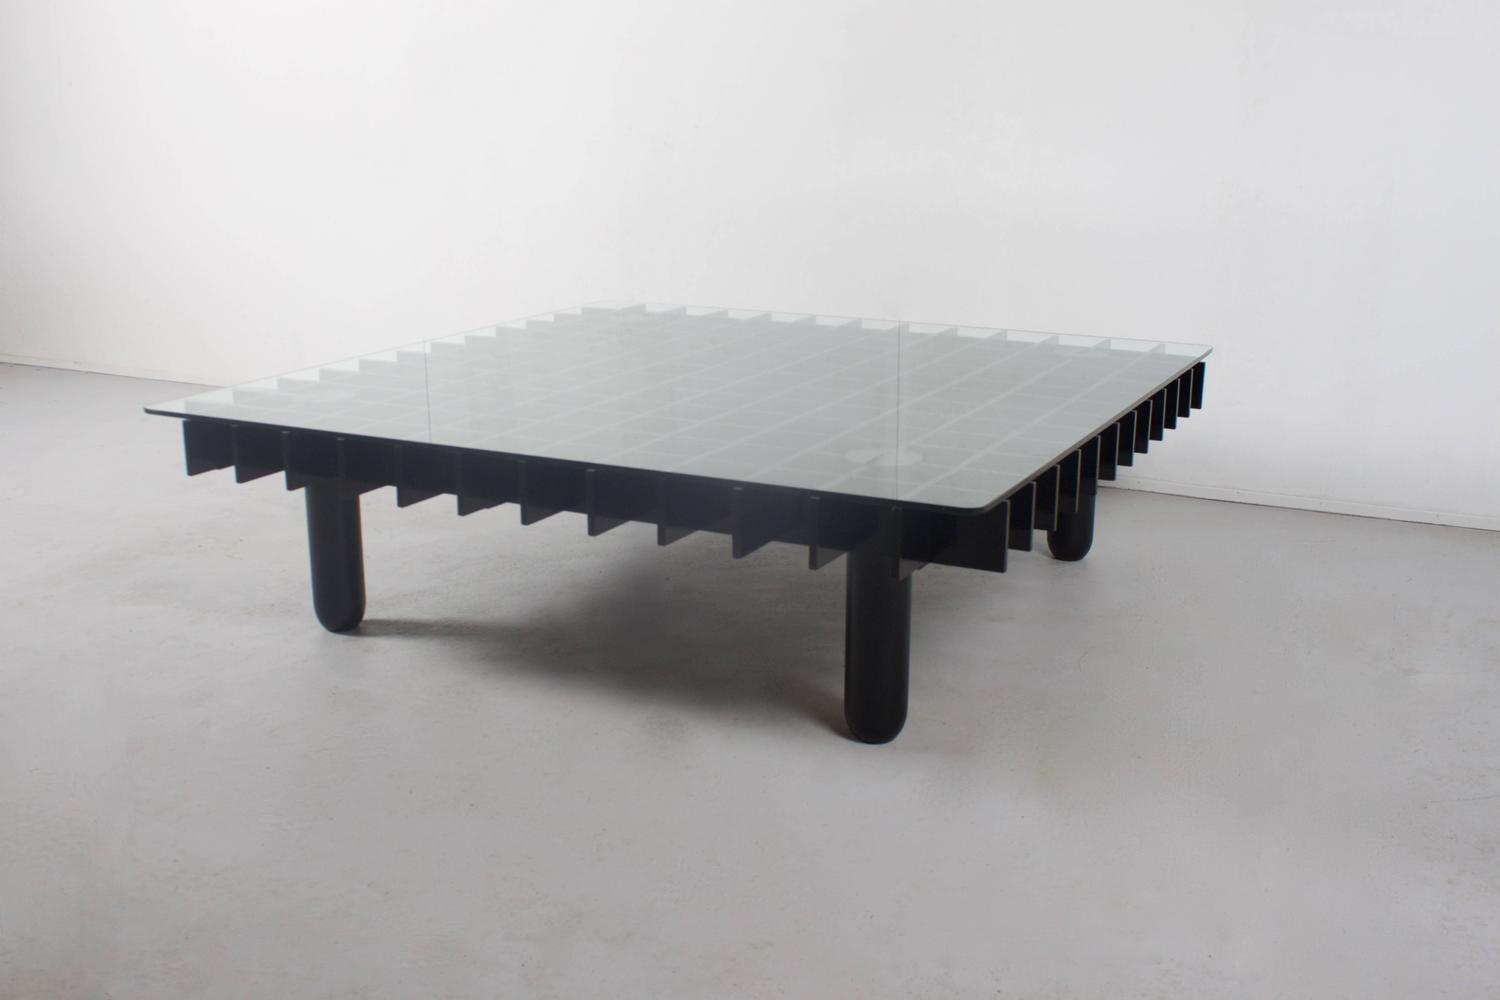 1970s Graphic Kyoto Coffee Table By Gianfranco Frattini For Knoll At 1stdibs